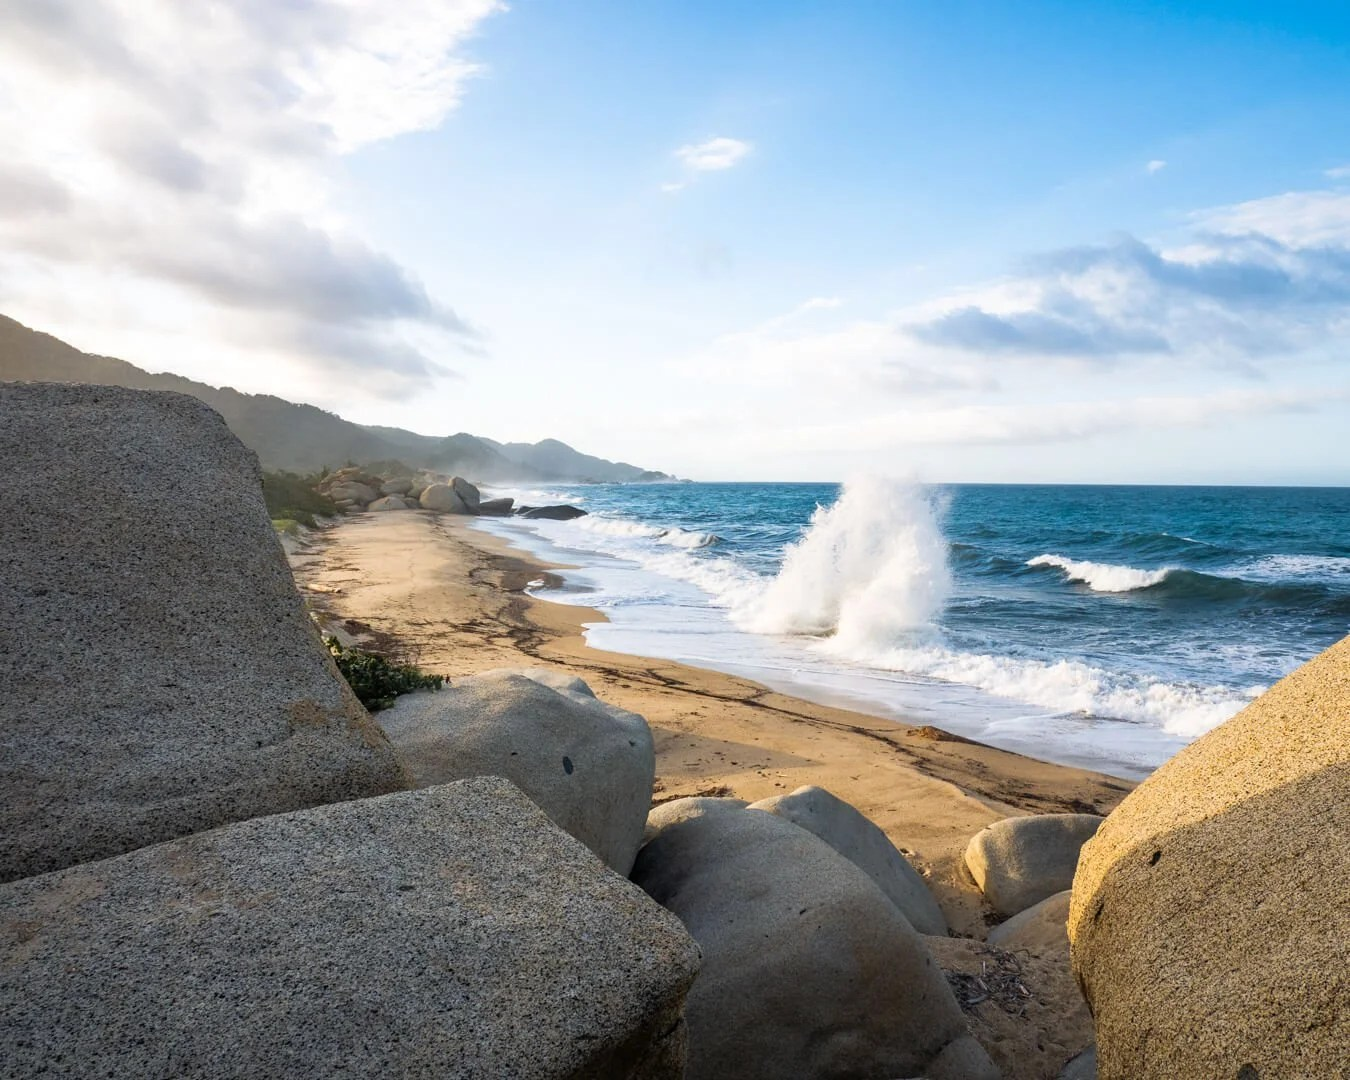 Waves crashing at Tayrona beach